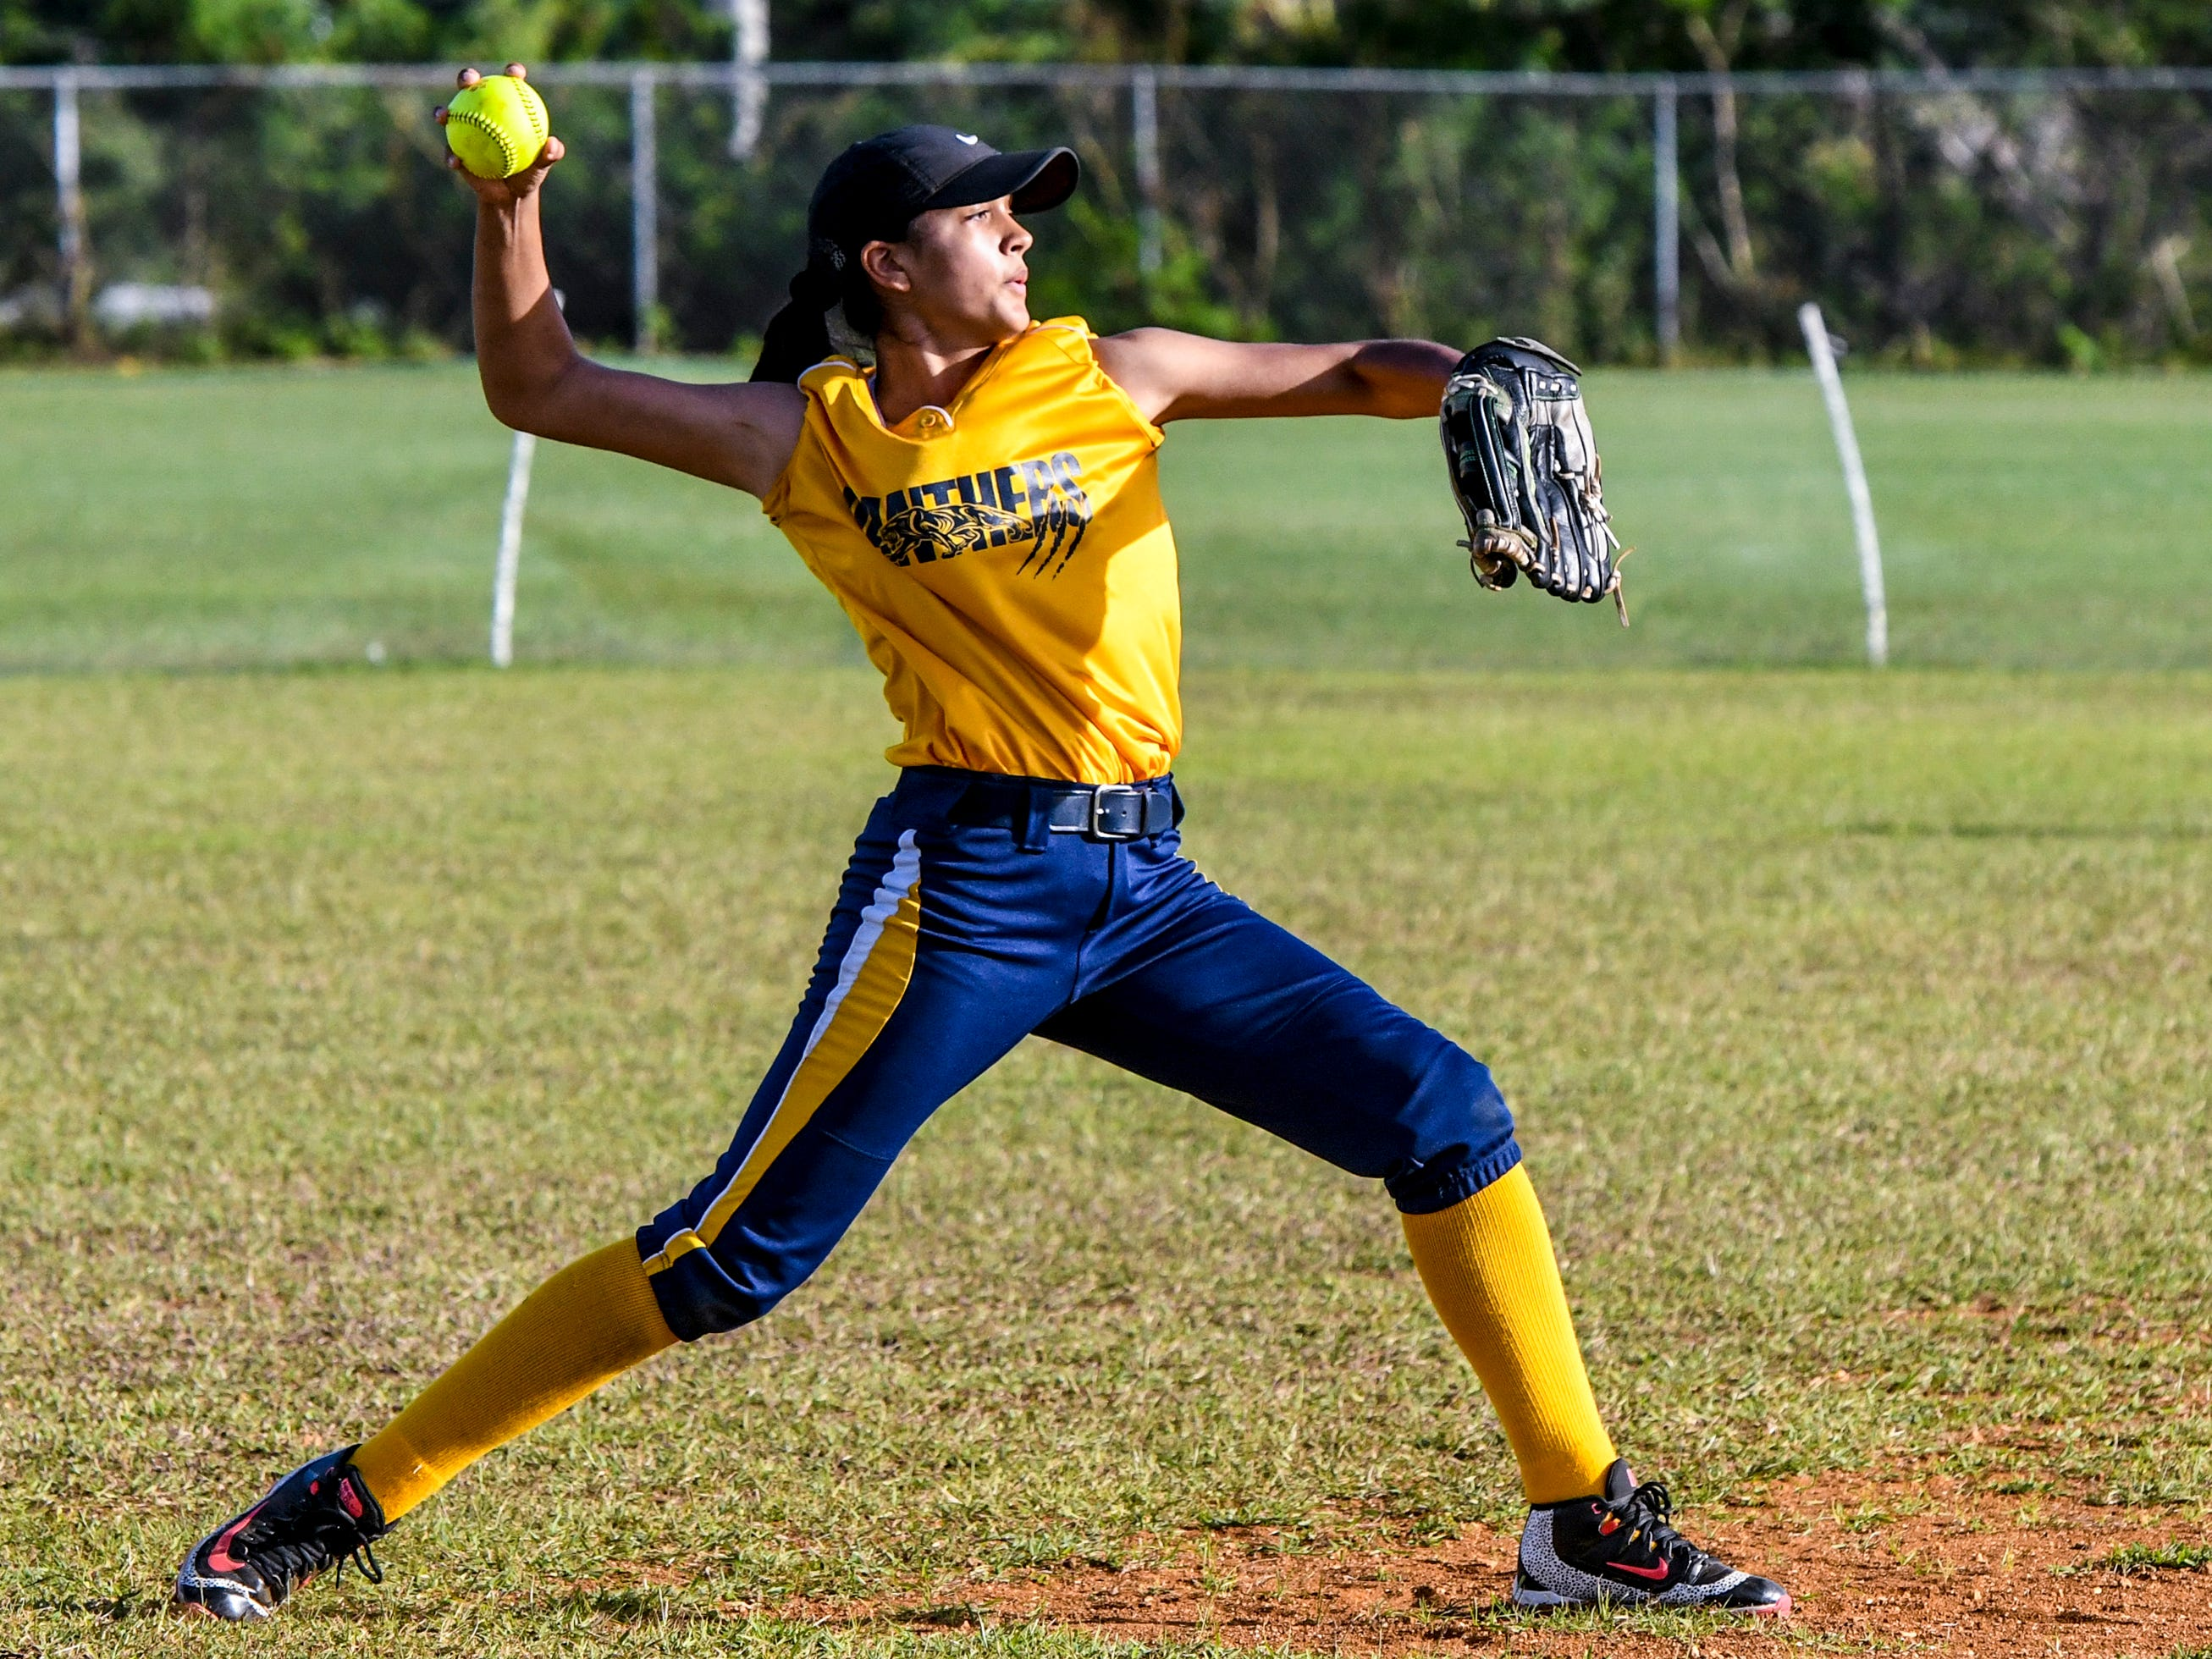 Guam High Panthers' Gabriella Rodriguez prepare to send a throw to first base during an IIAAG girls softball matchup with the John F. Kennedy Islanders at the JFK High School campus in Tamuning on Thursday, Feb. 7, 2019.